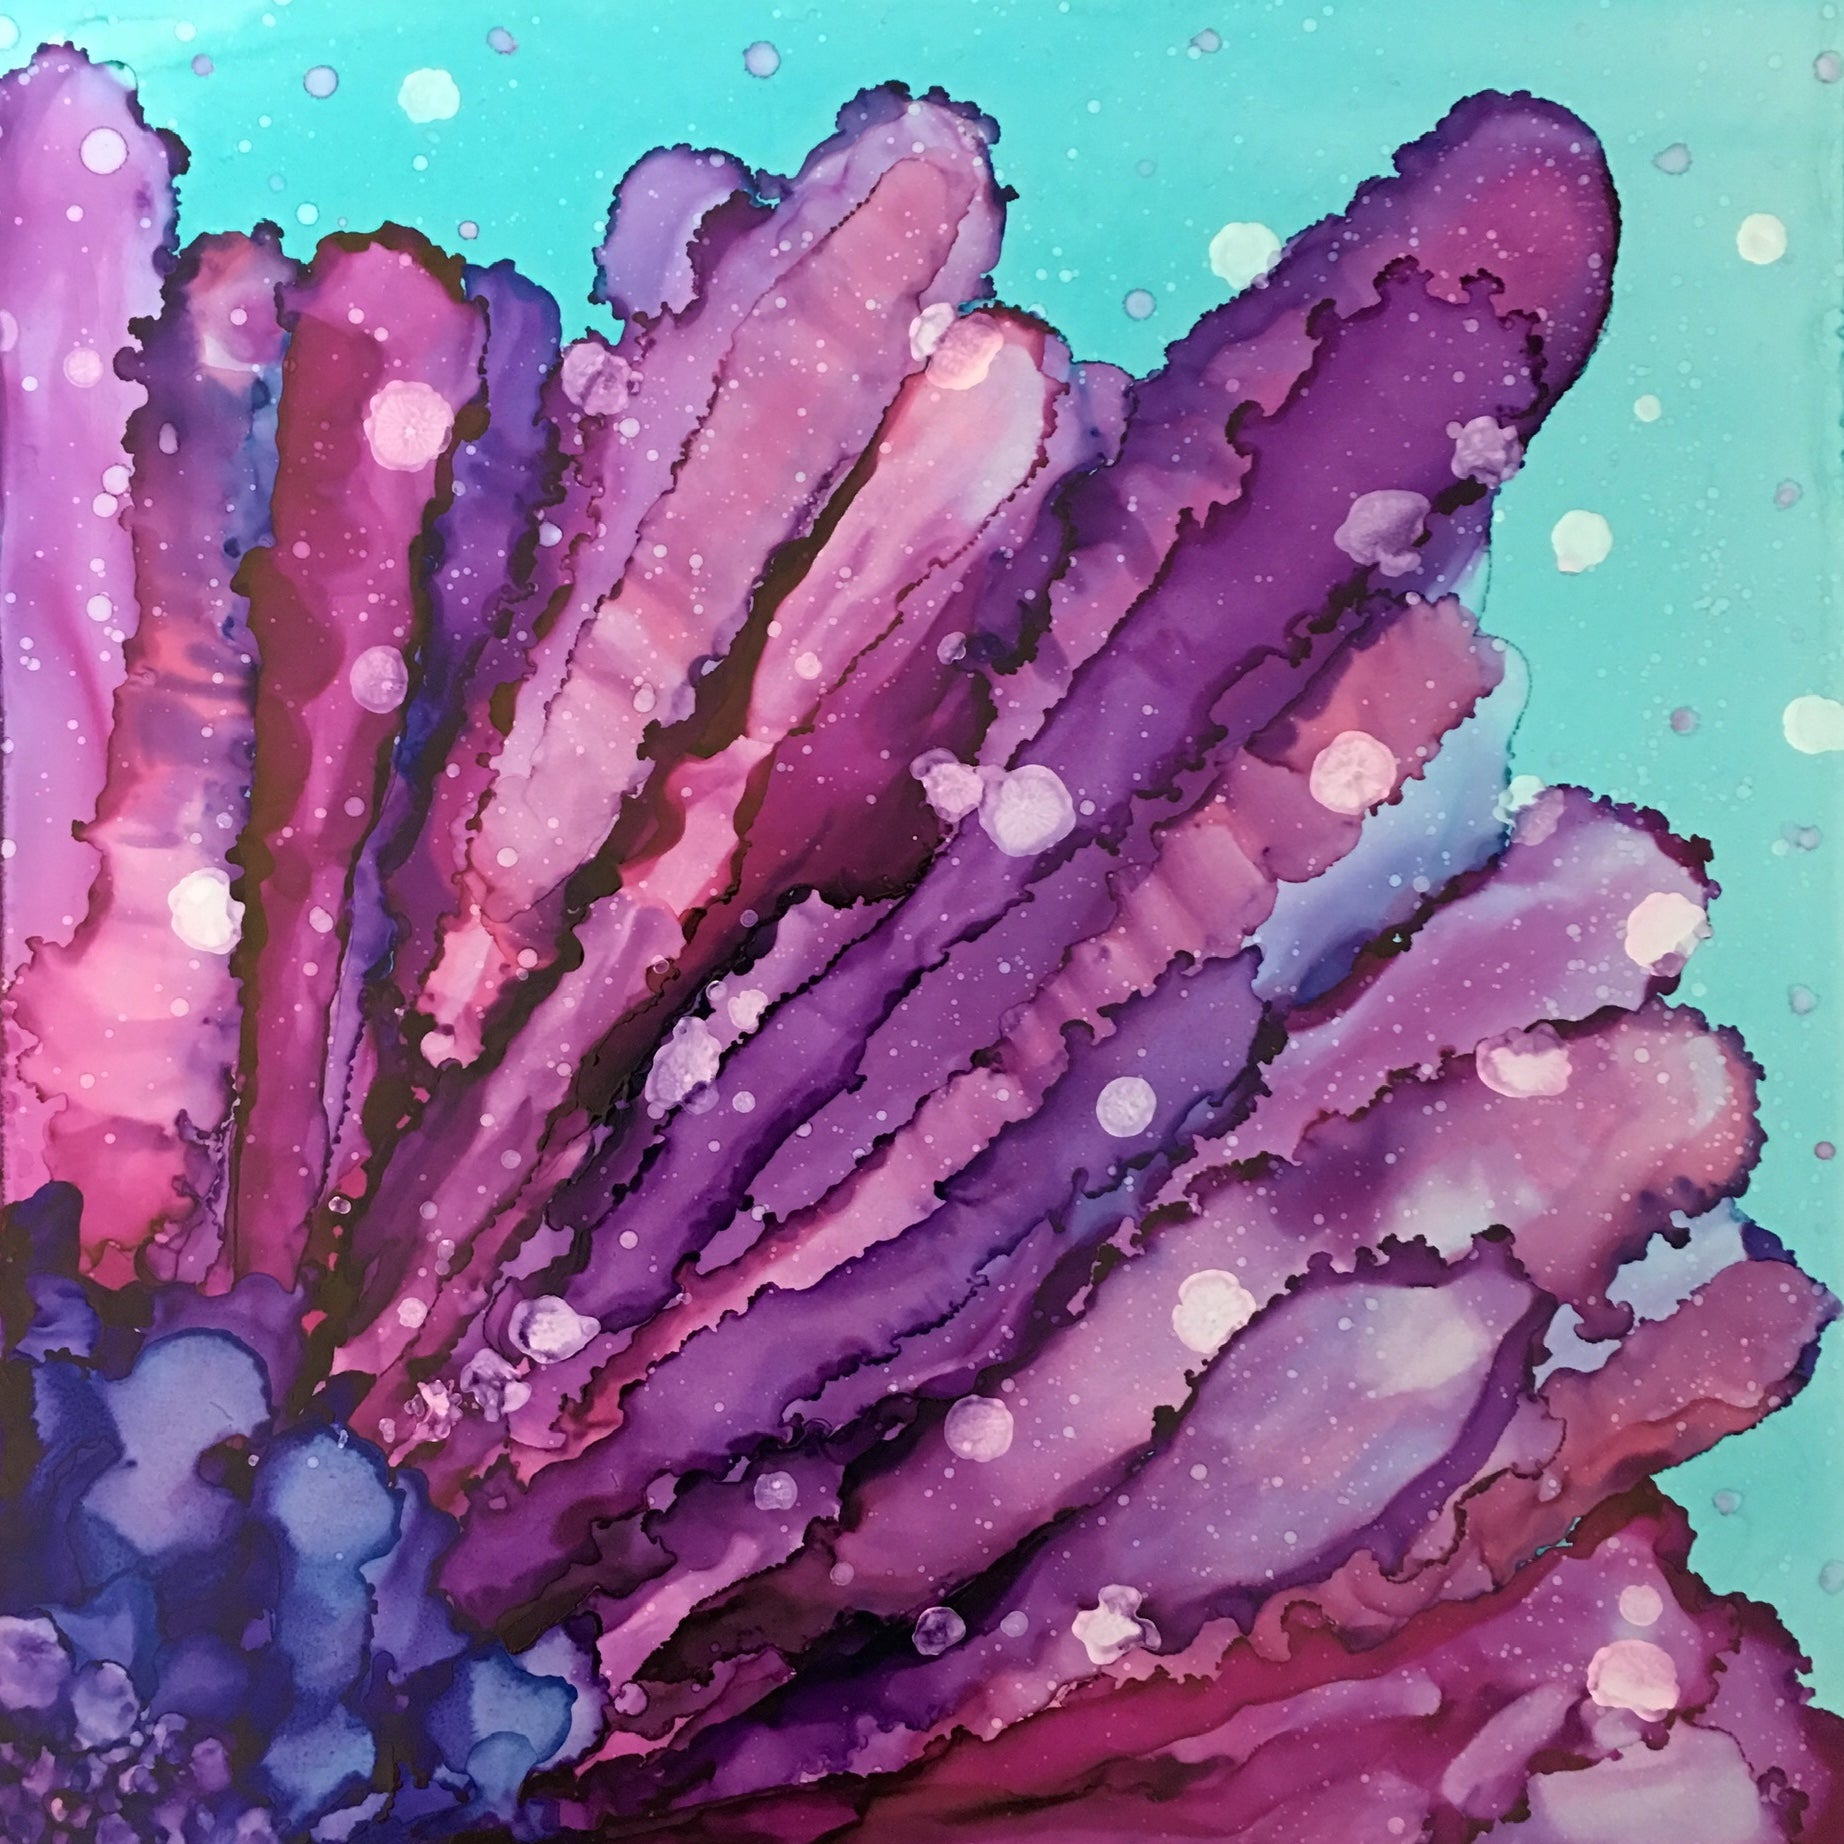 """Cathy's Sea Urchin"" - Original Alcohol Ink Framed Painting"